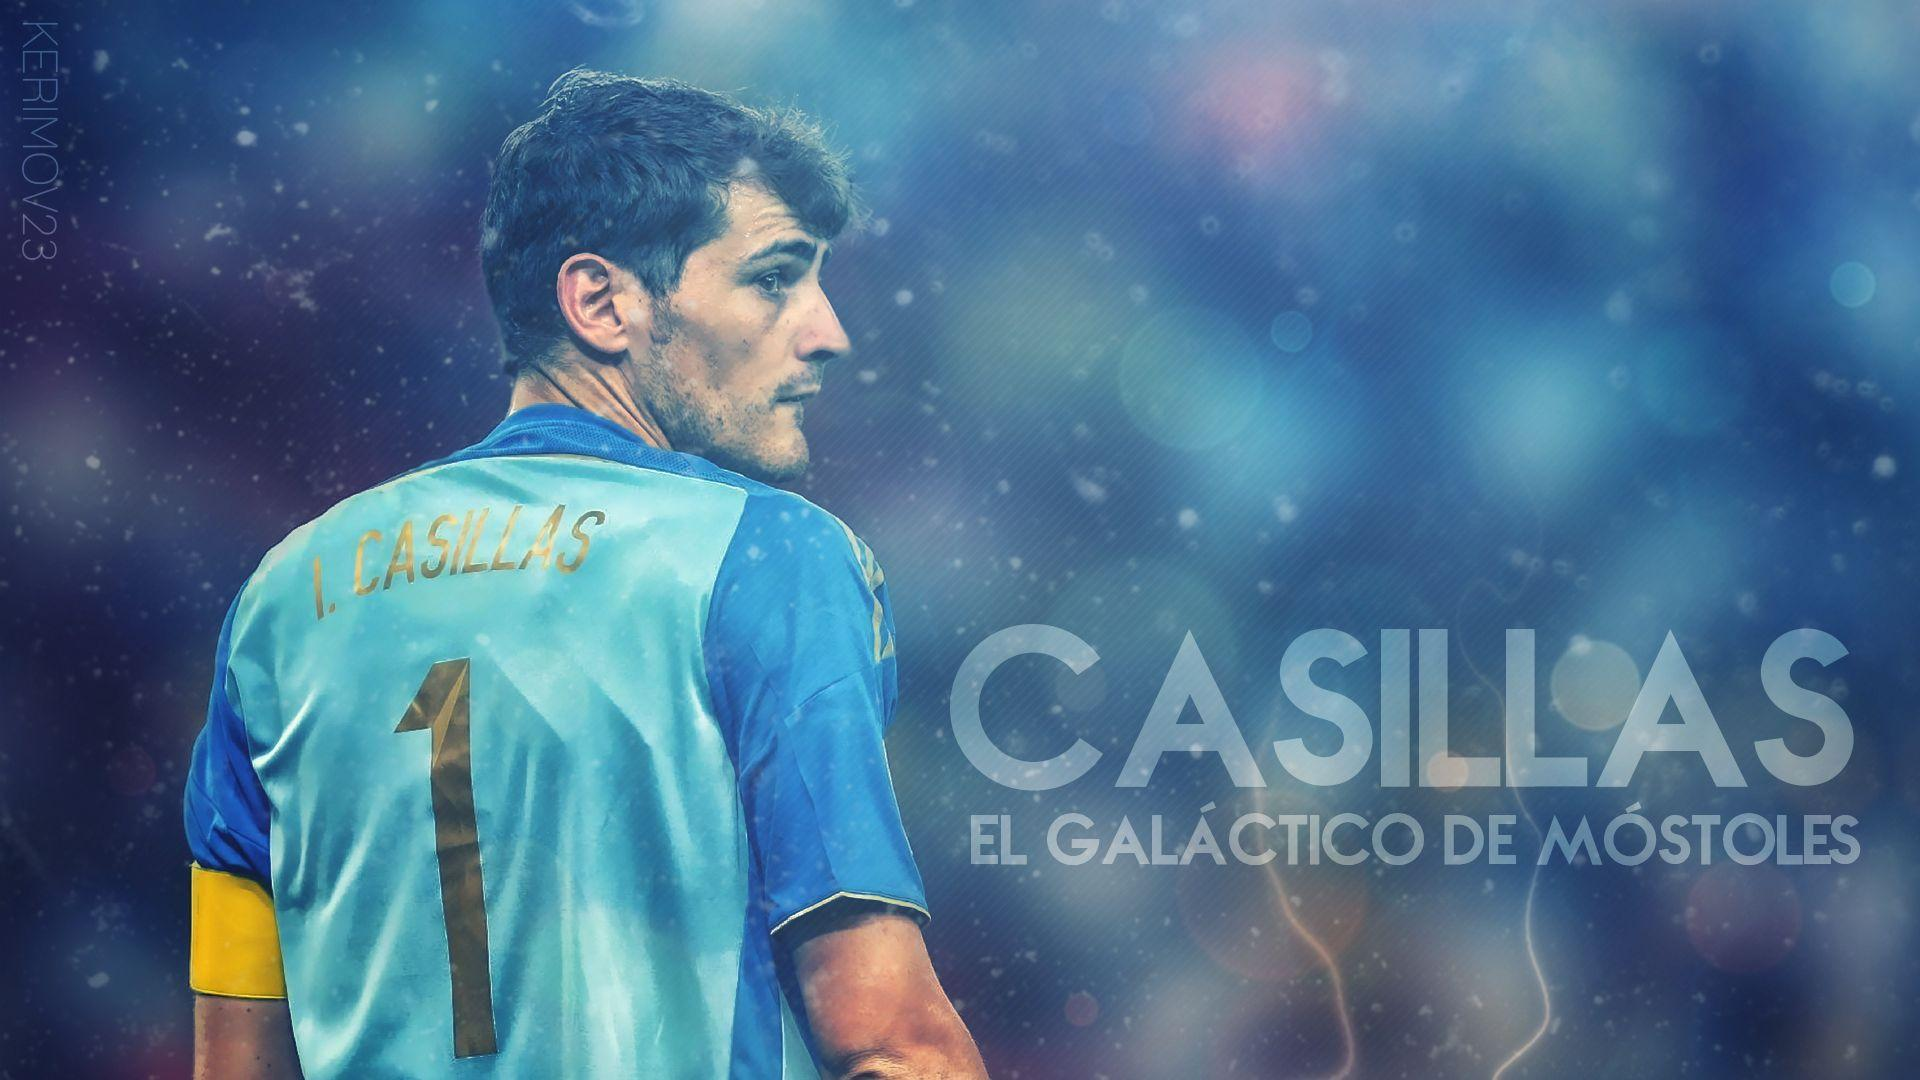 IKER Casillas - Spain Wallpaper by Kerimov23 on DeviantArt